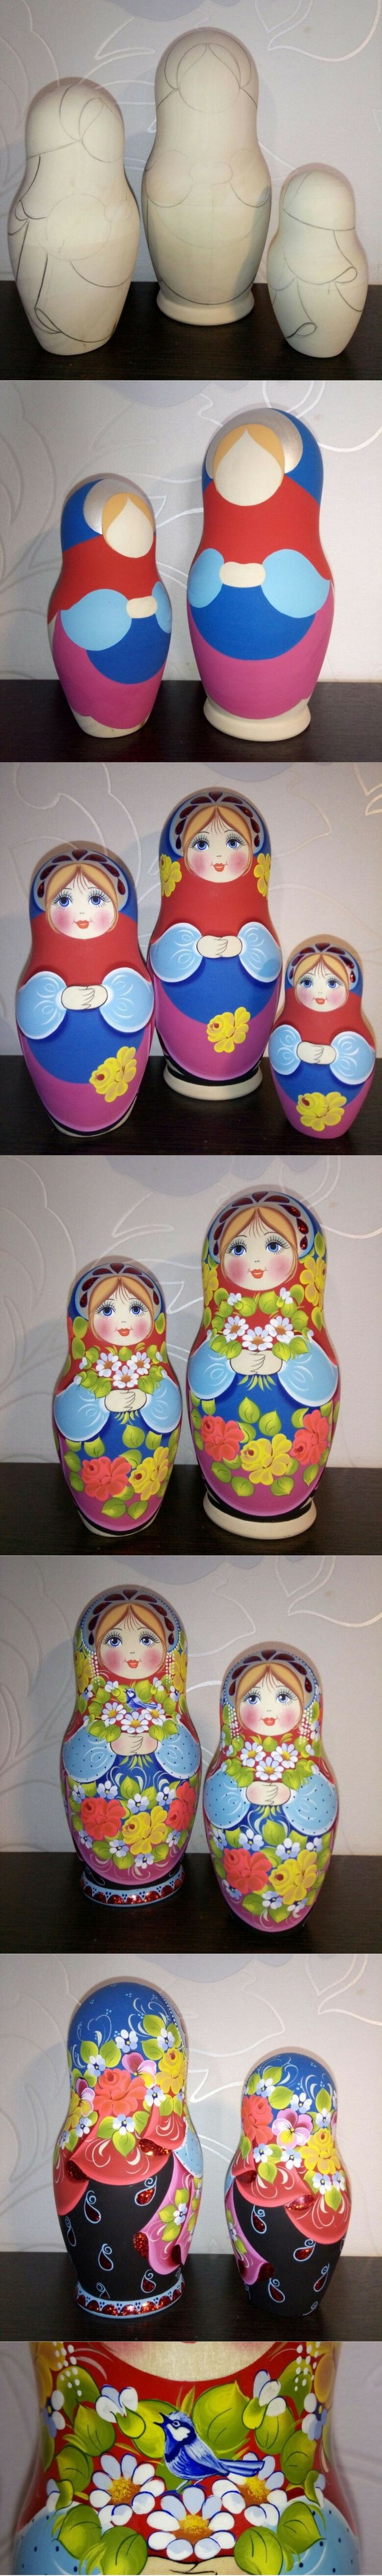 Matryoshka doll with blue wren in her hands, created by artist Nadezhda Tihonovich